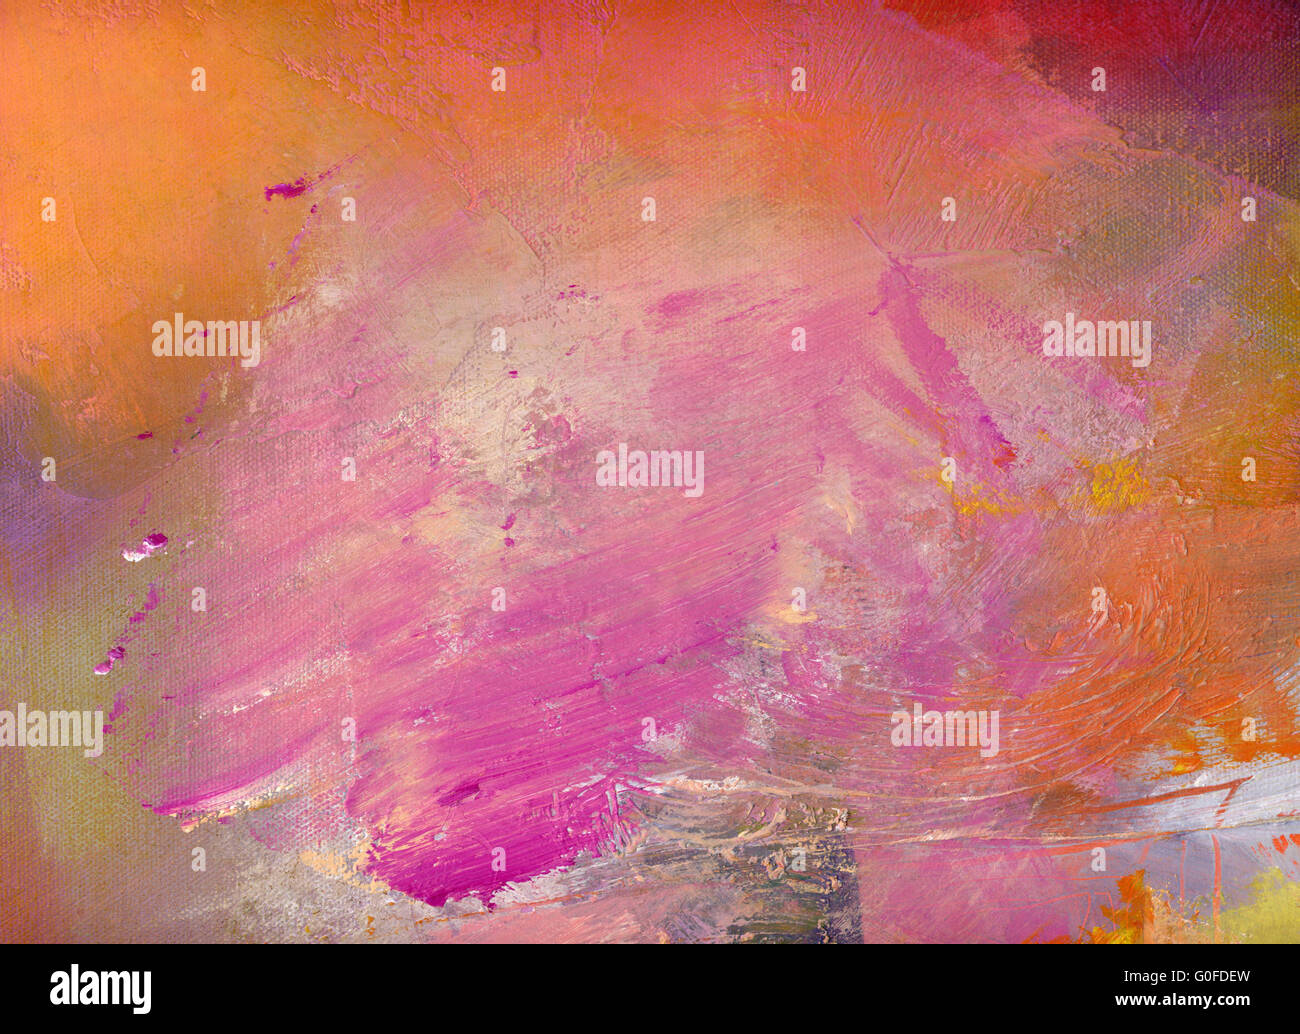 hand painted colorful textures - Stock Image